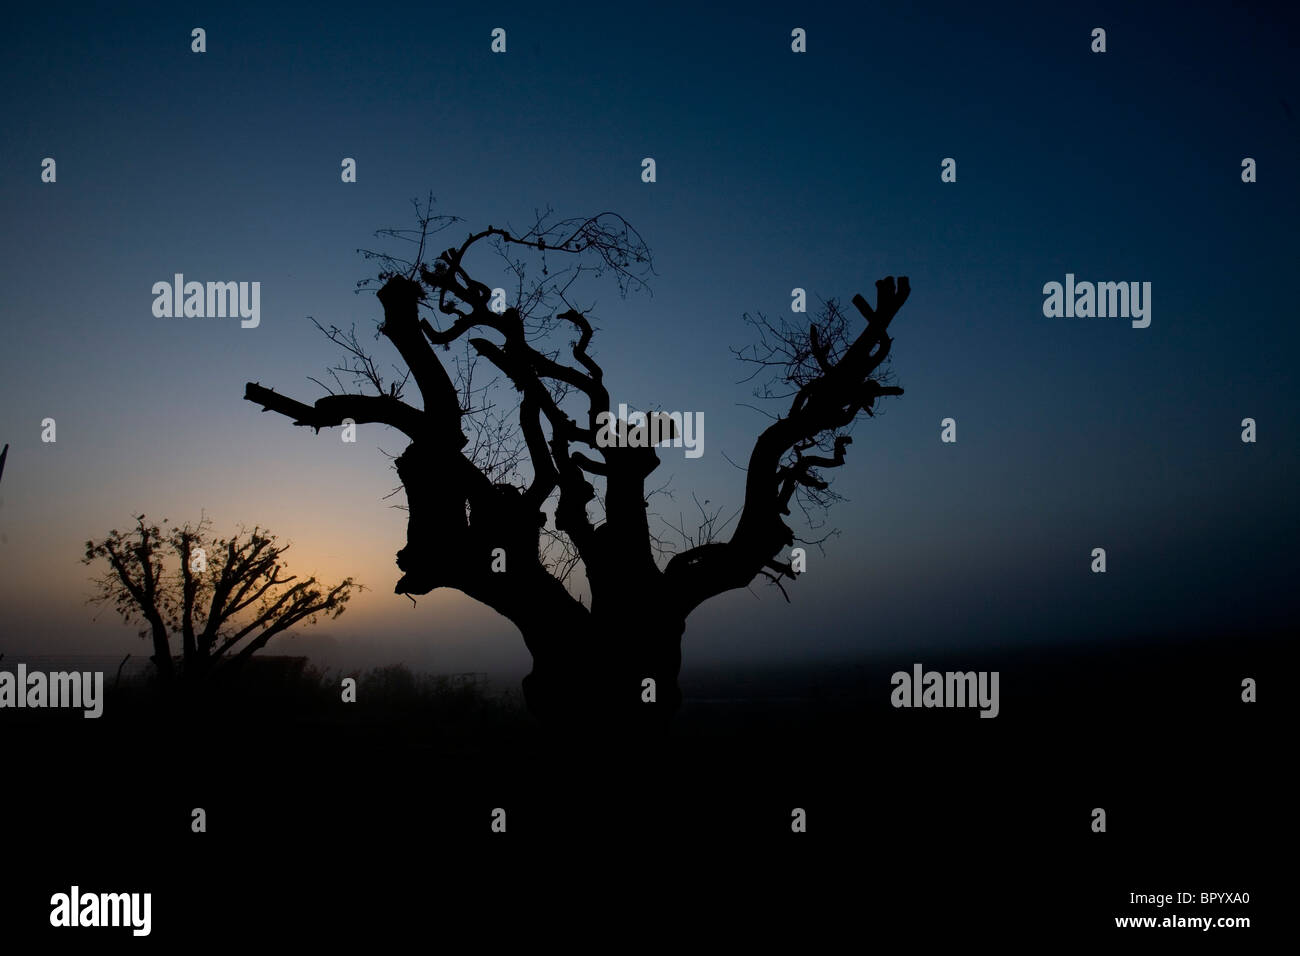 Photograph of the silhouette of a tree stump at dusk - Stock Image